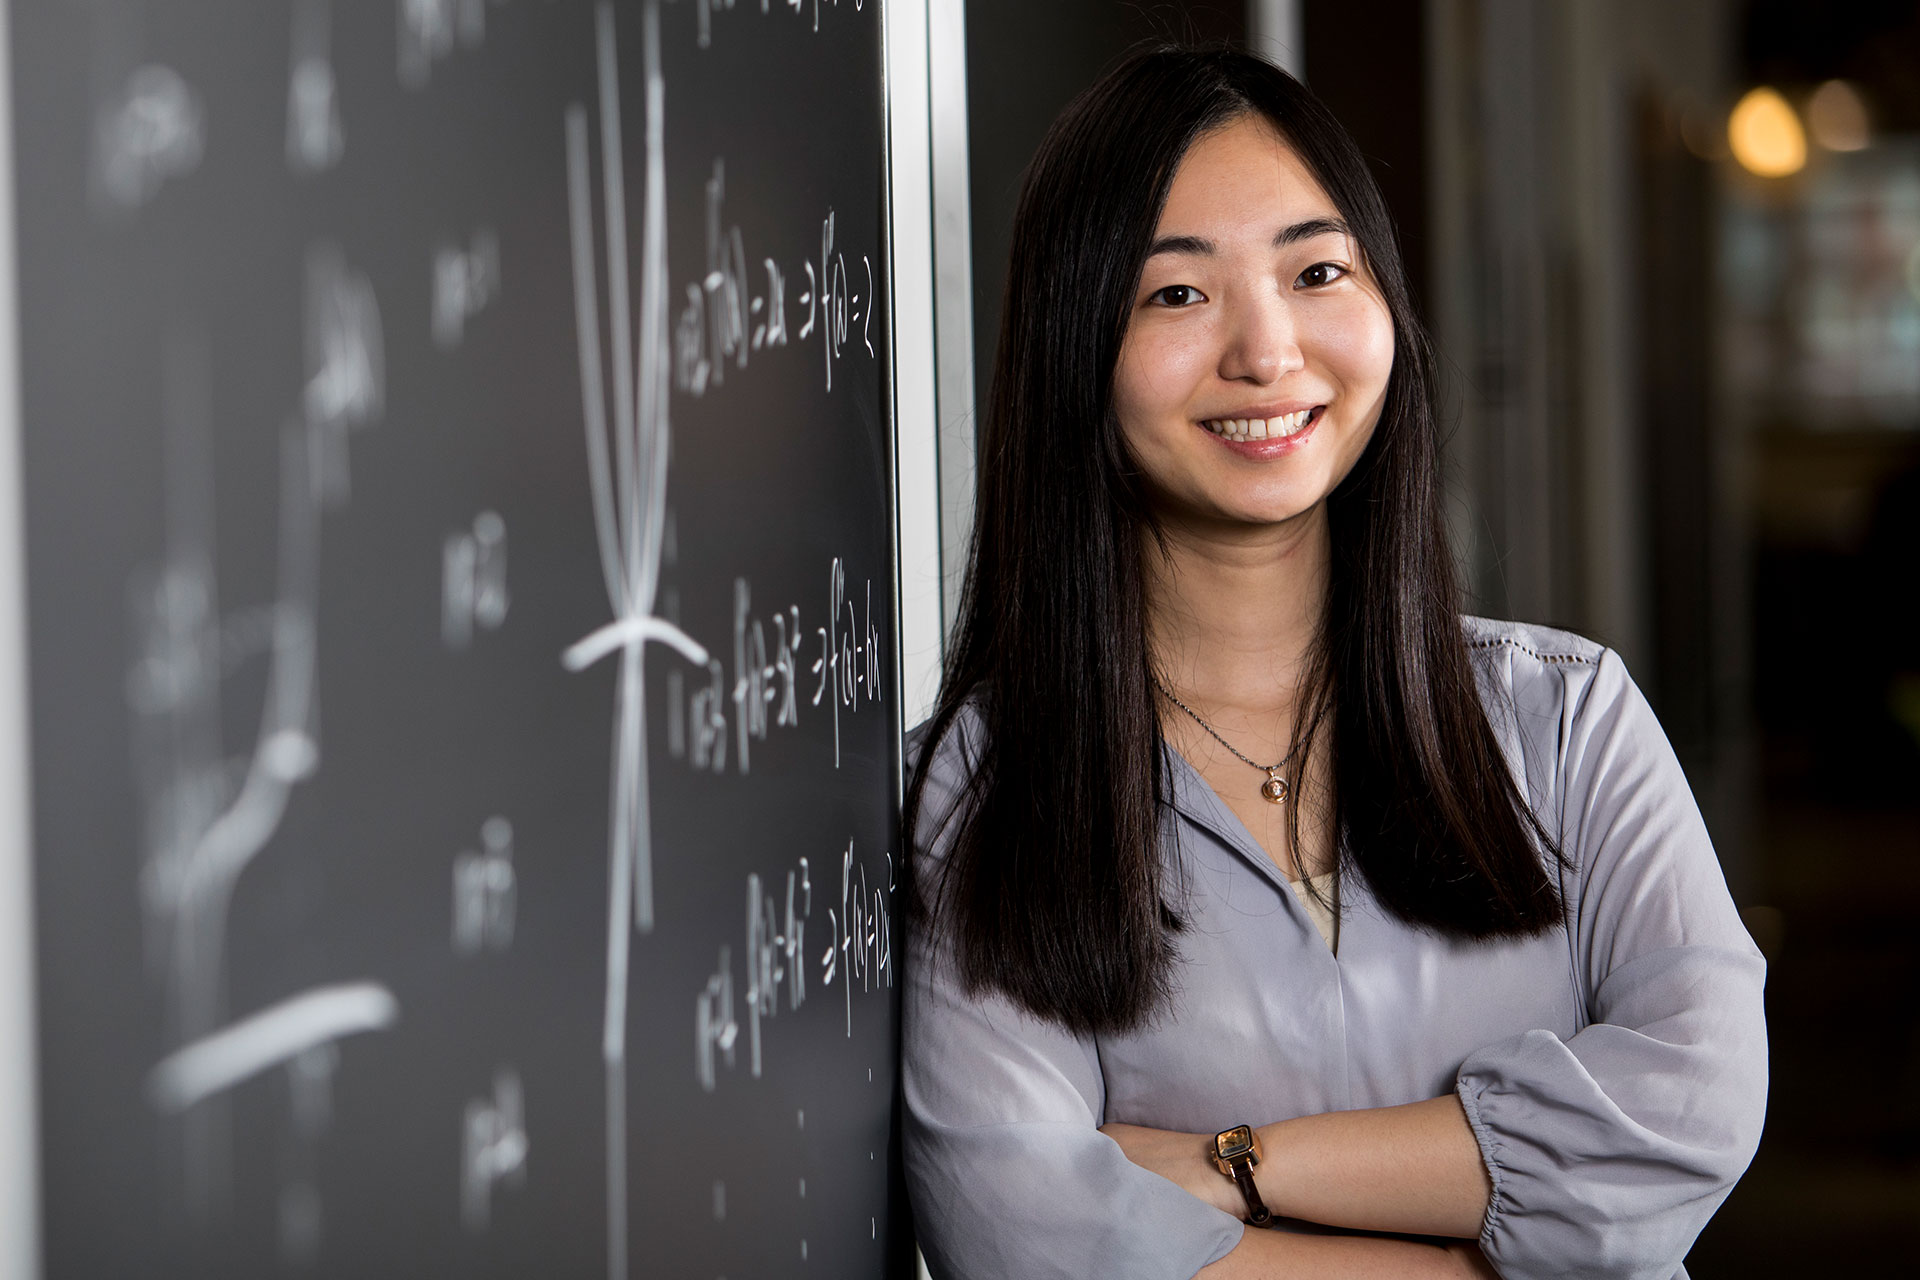 Ph.D. candidate Joanne Lin in the CLIC building at Tufts University